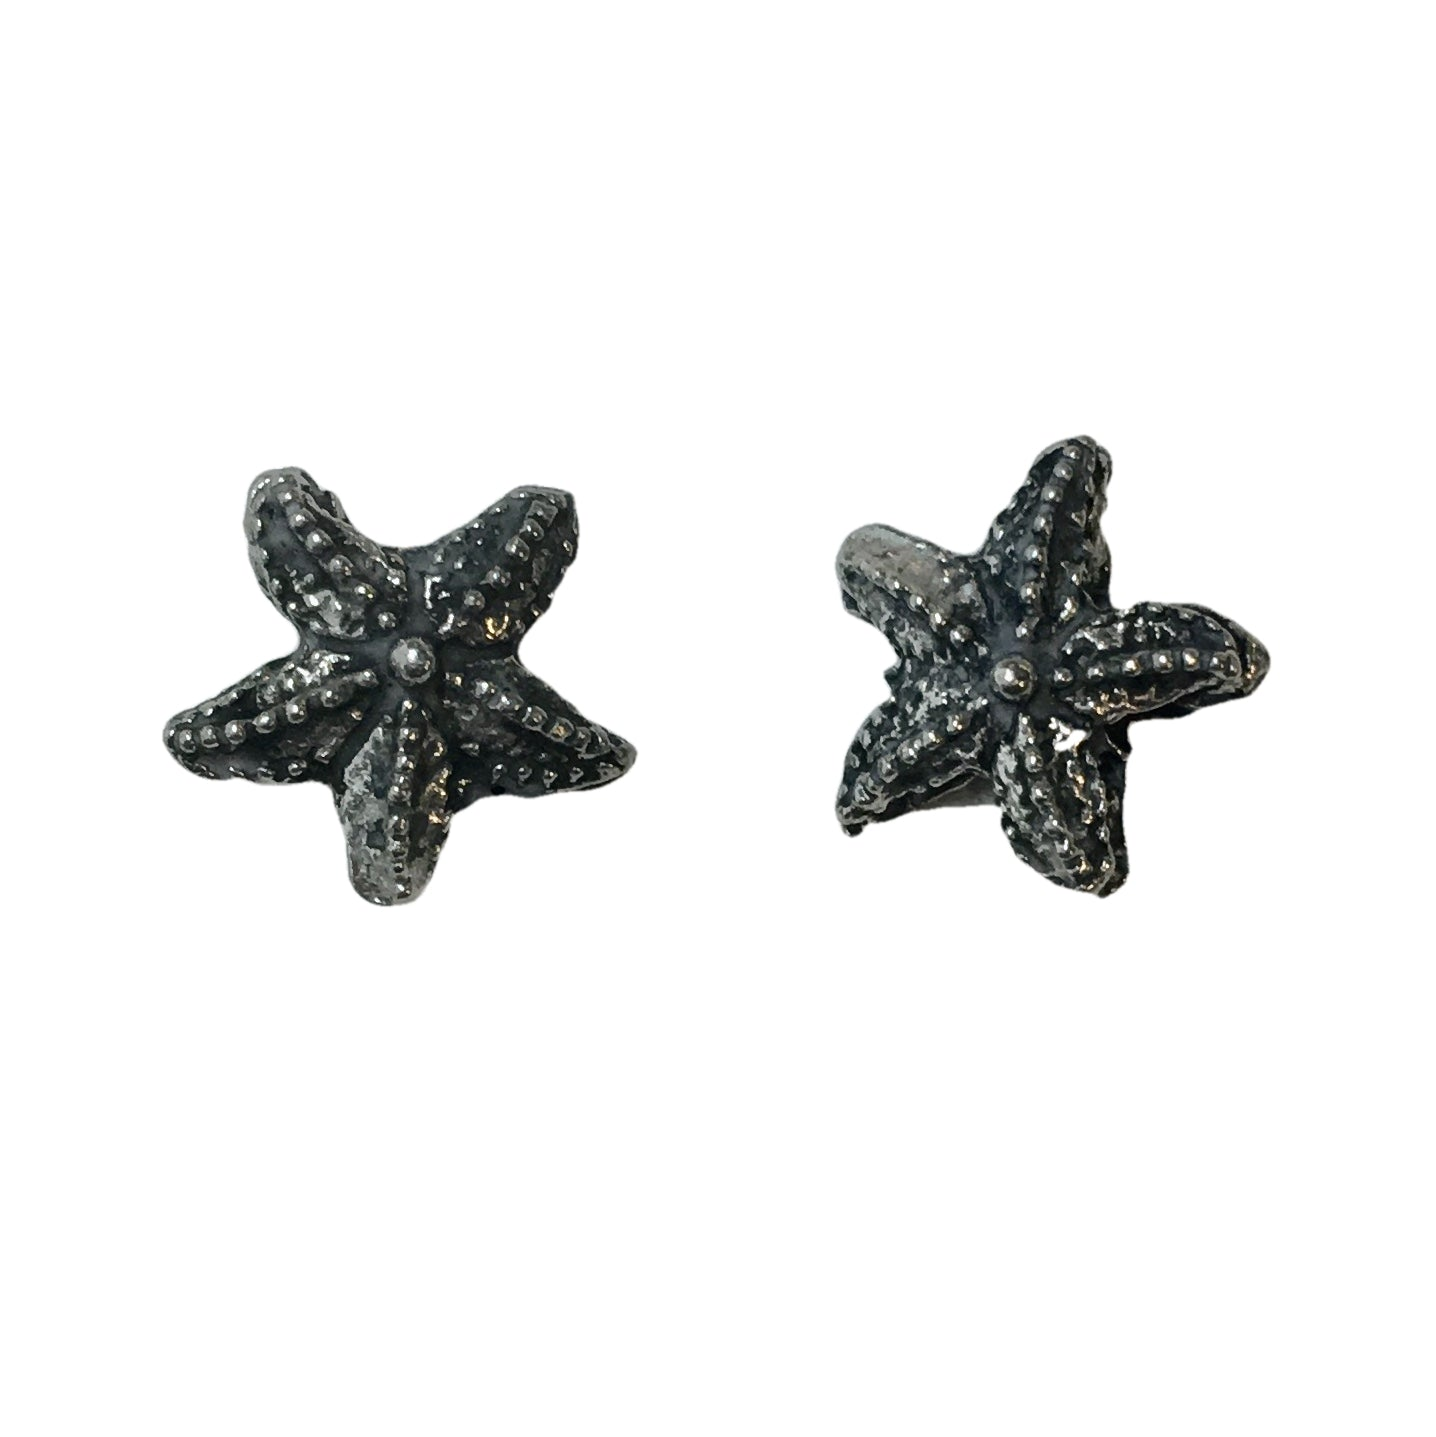 Starfish Beads - Qty 5 - Lead Free Pewter Silver - American Made